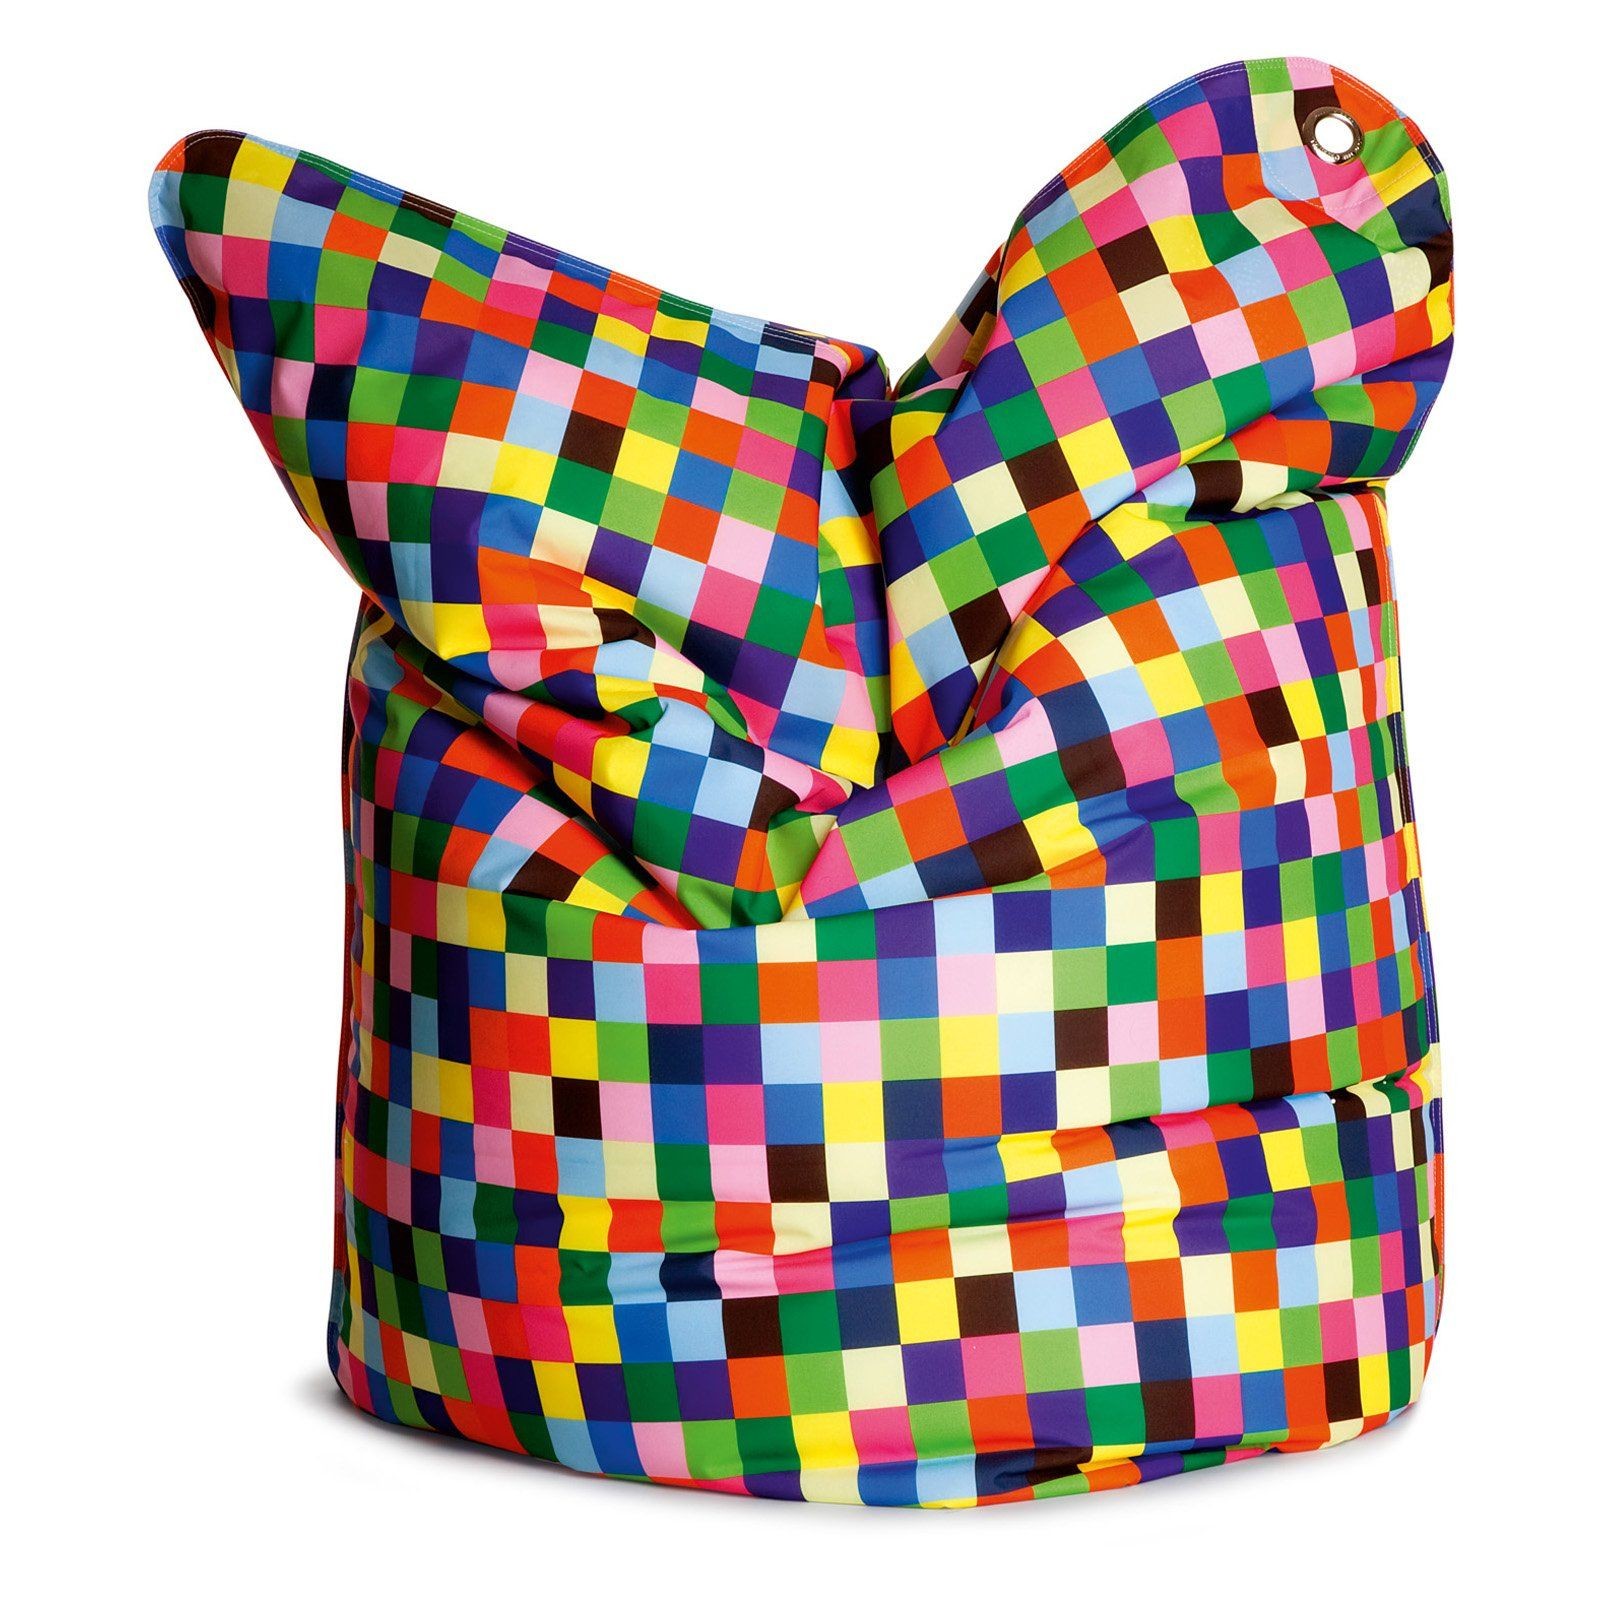 Have to have it. THE BULL Large Fashion Bean Bag Chair - Happy Pixels $313.98